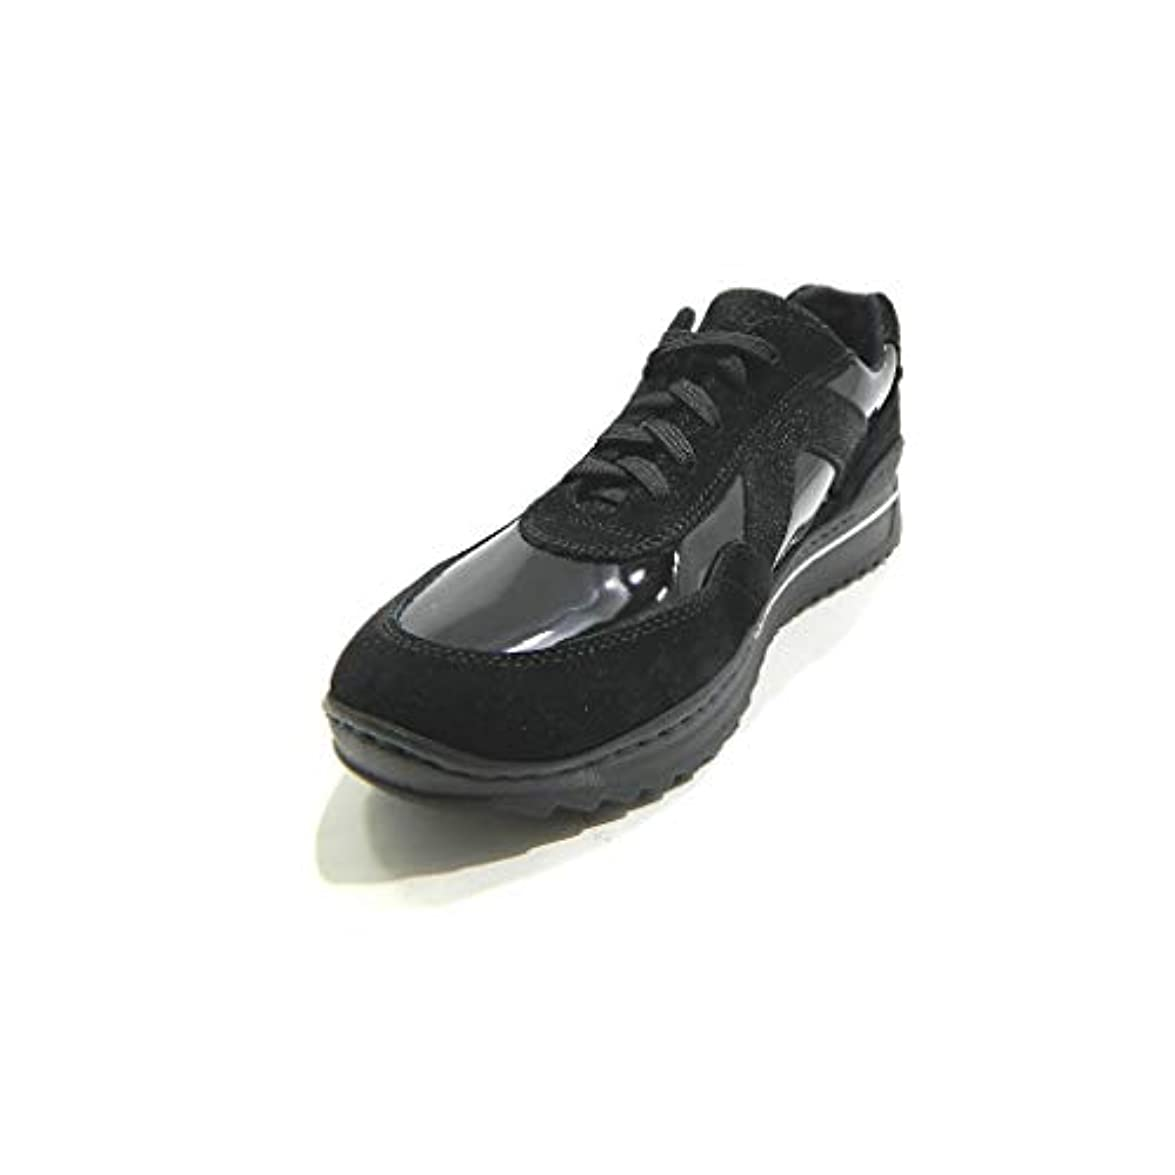 Stile Di Vita 7282 Sneakers Donna Stringate Ultra Soft Suede Mix Nero